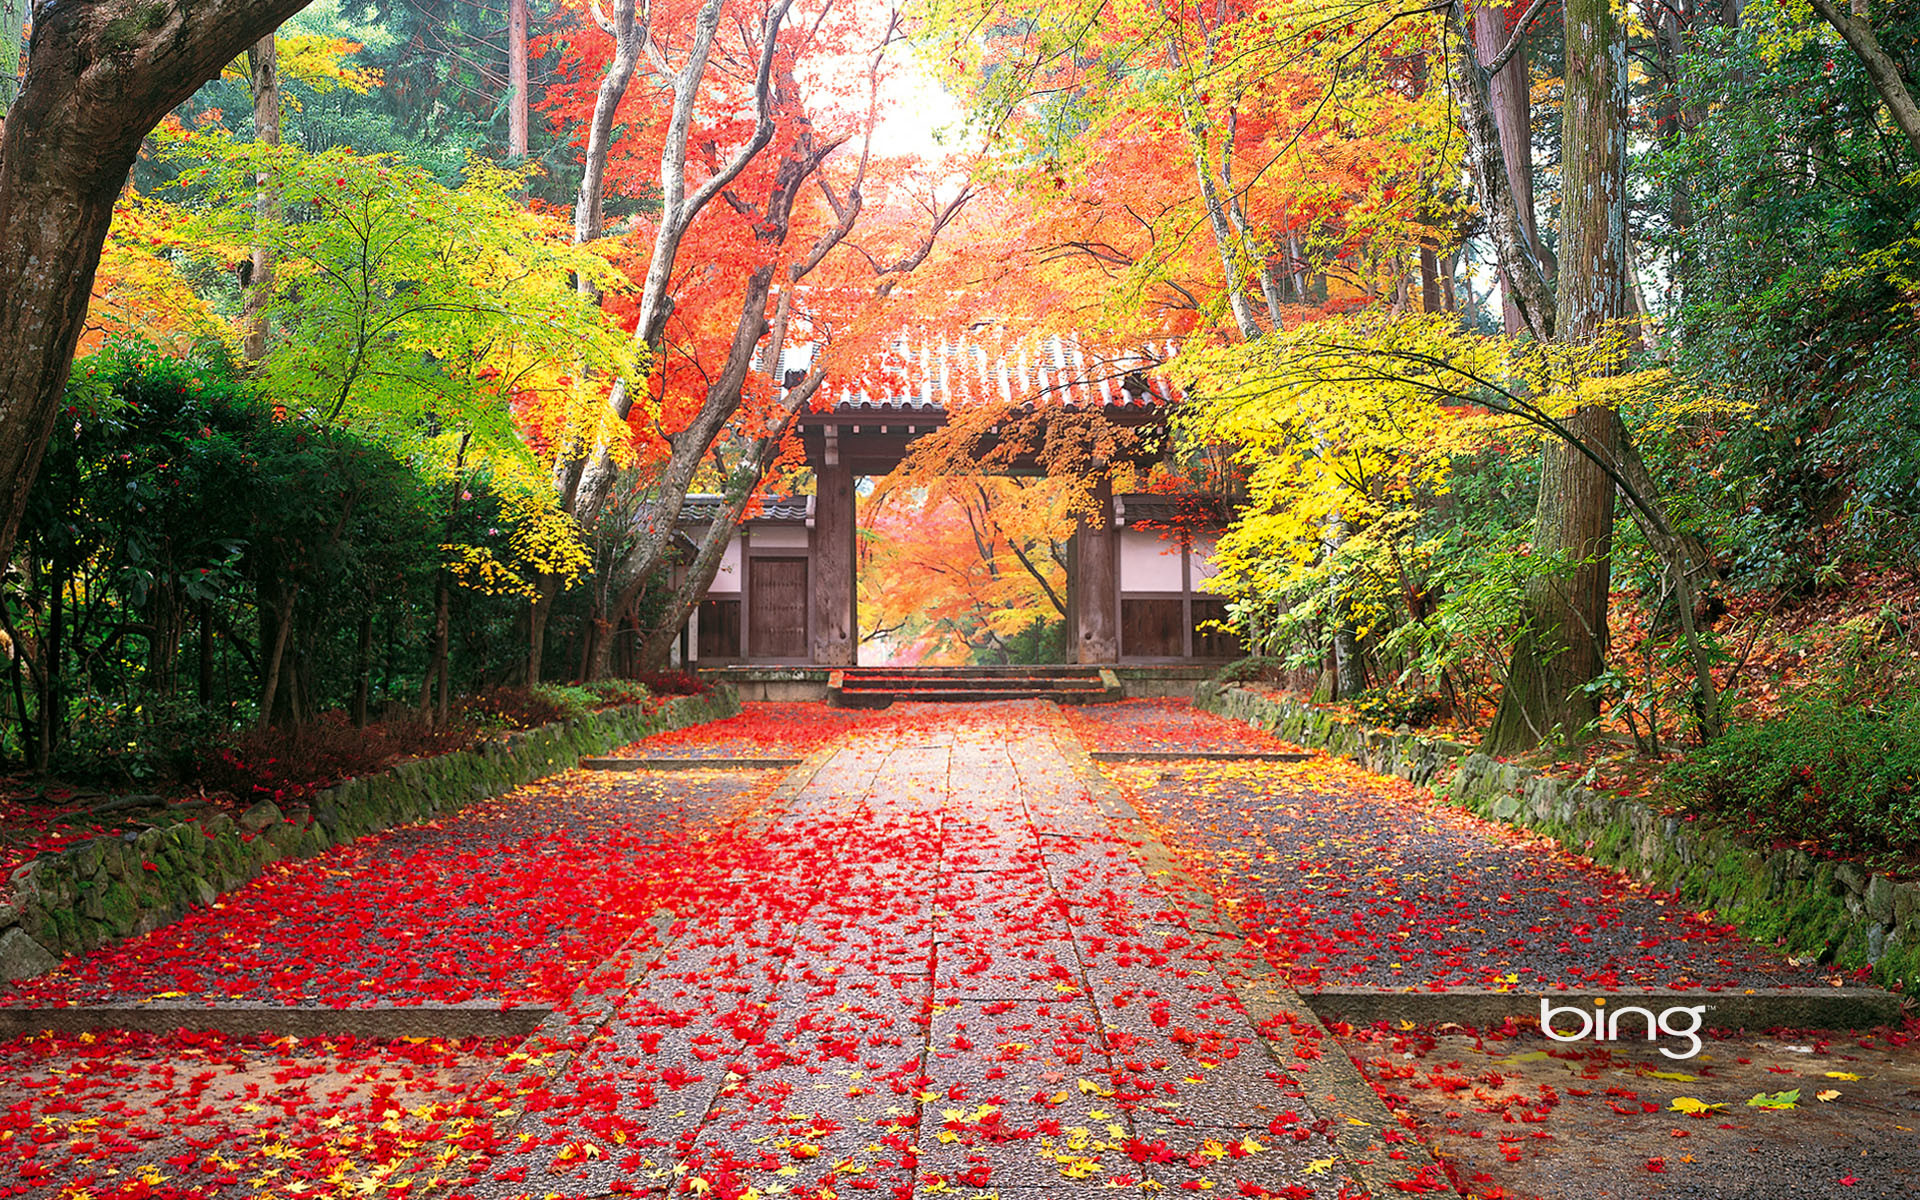 Res: 1920x1200, Tags: Autumn Japan